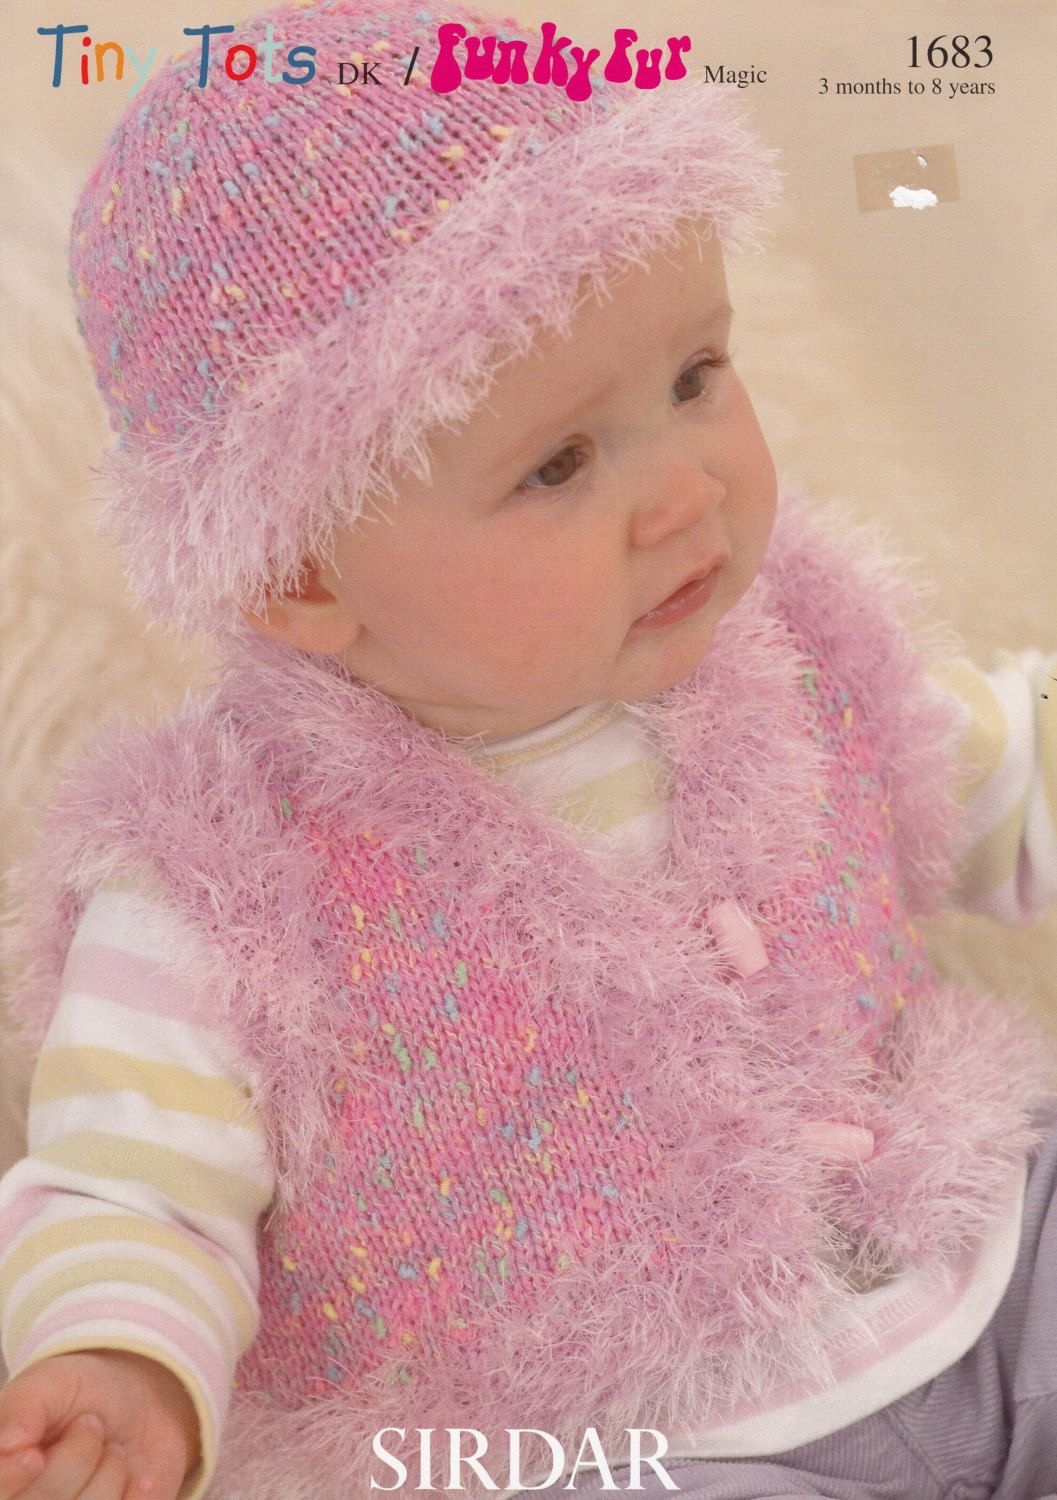 Baby waistcoat hat knitting pattern sirdar tiny tots funky fur baby waistcoat hat knitting pattern sirdar tiny tots funky fur magic knitting pattern bankloansurffo Image collections